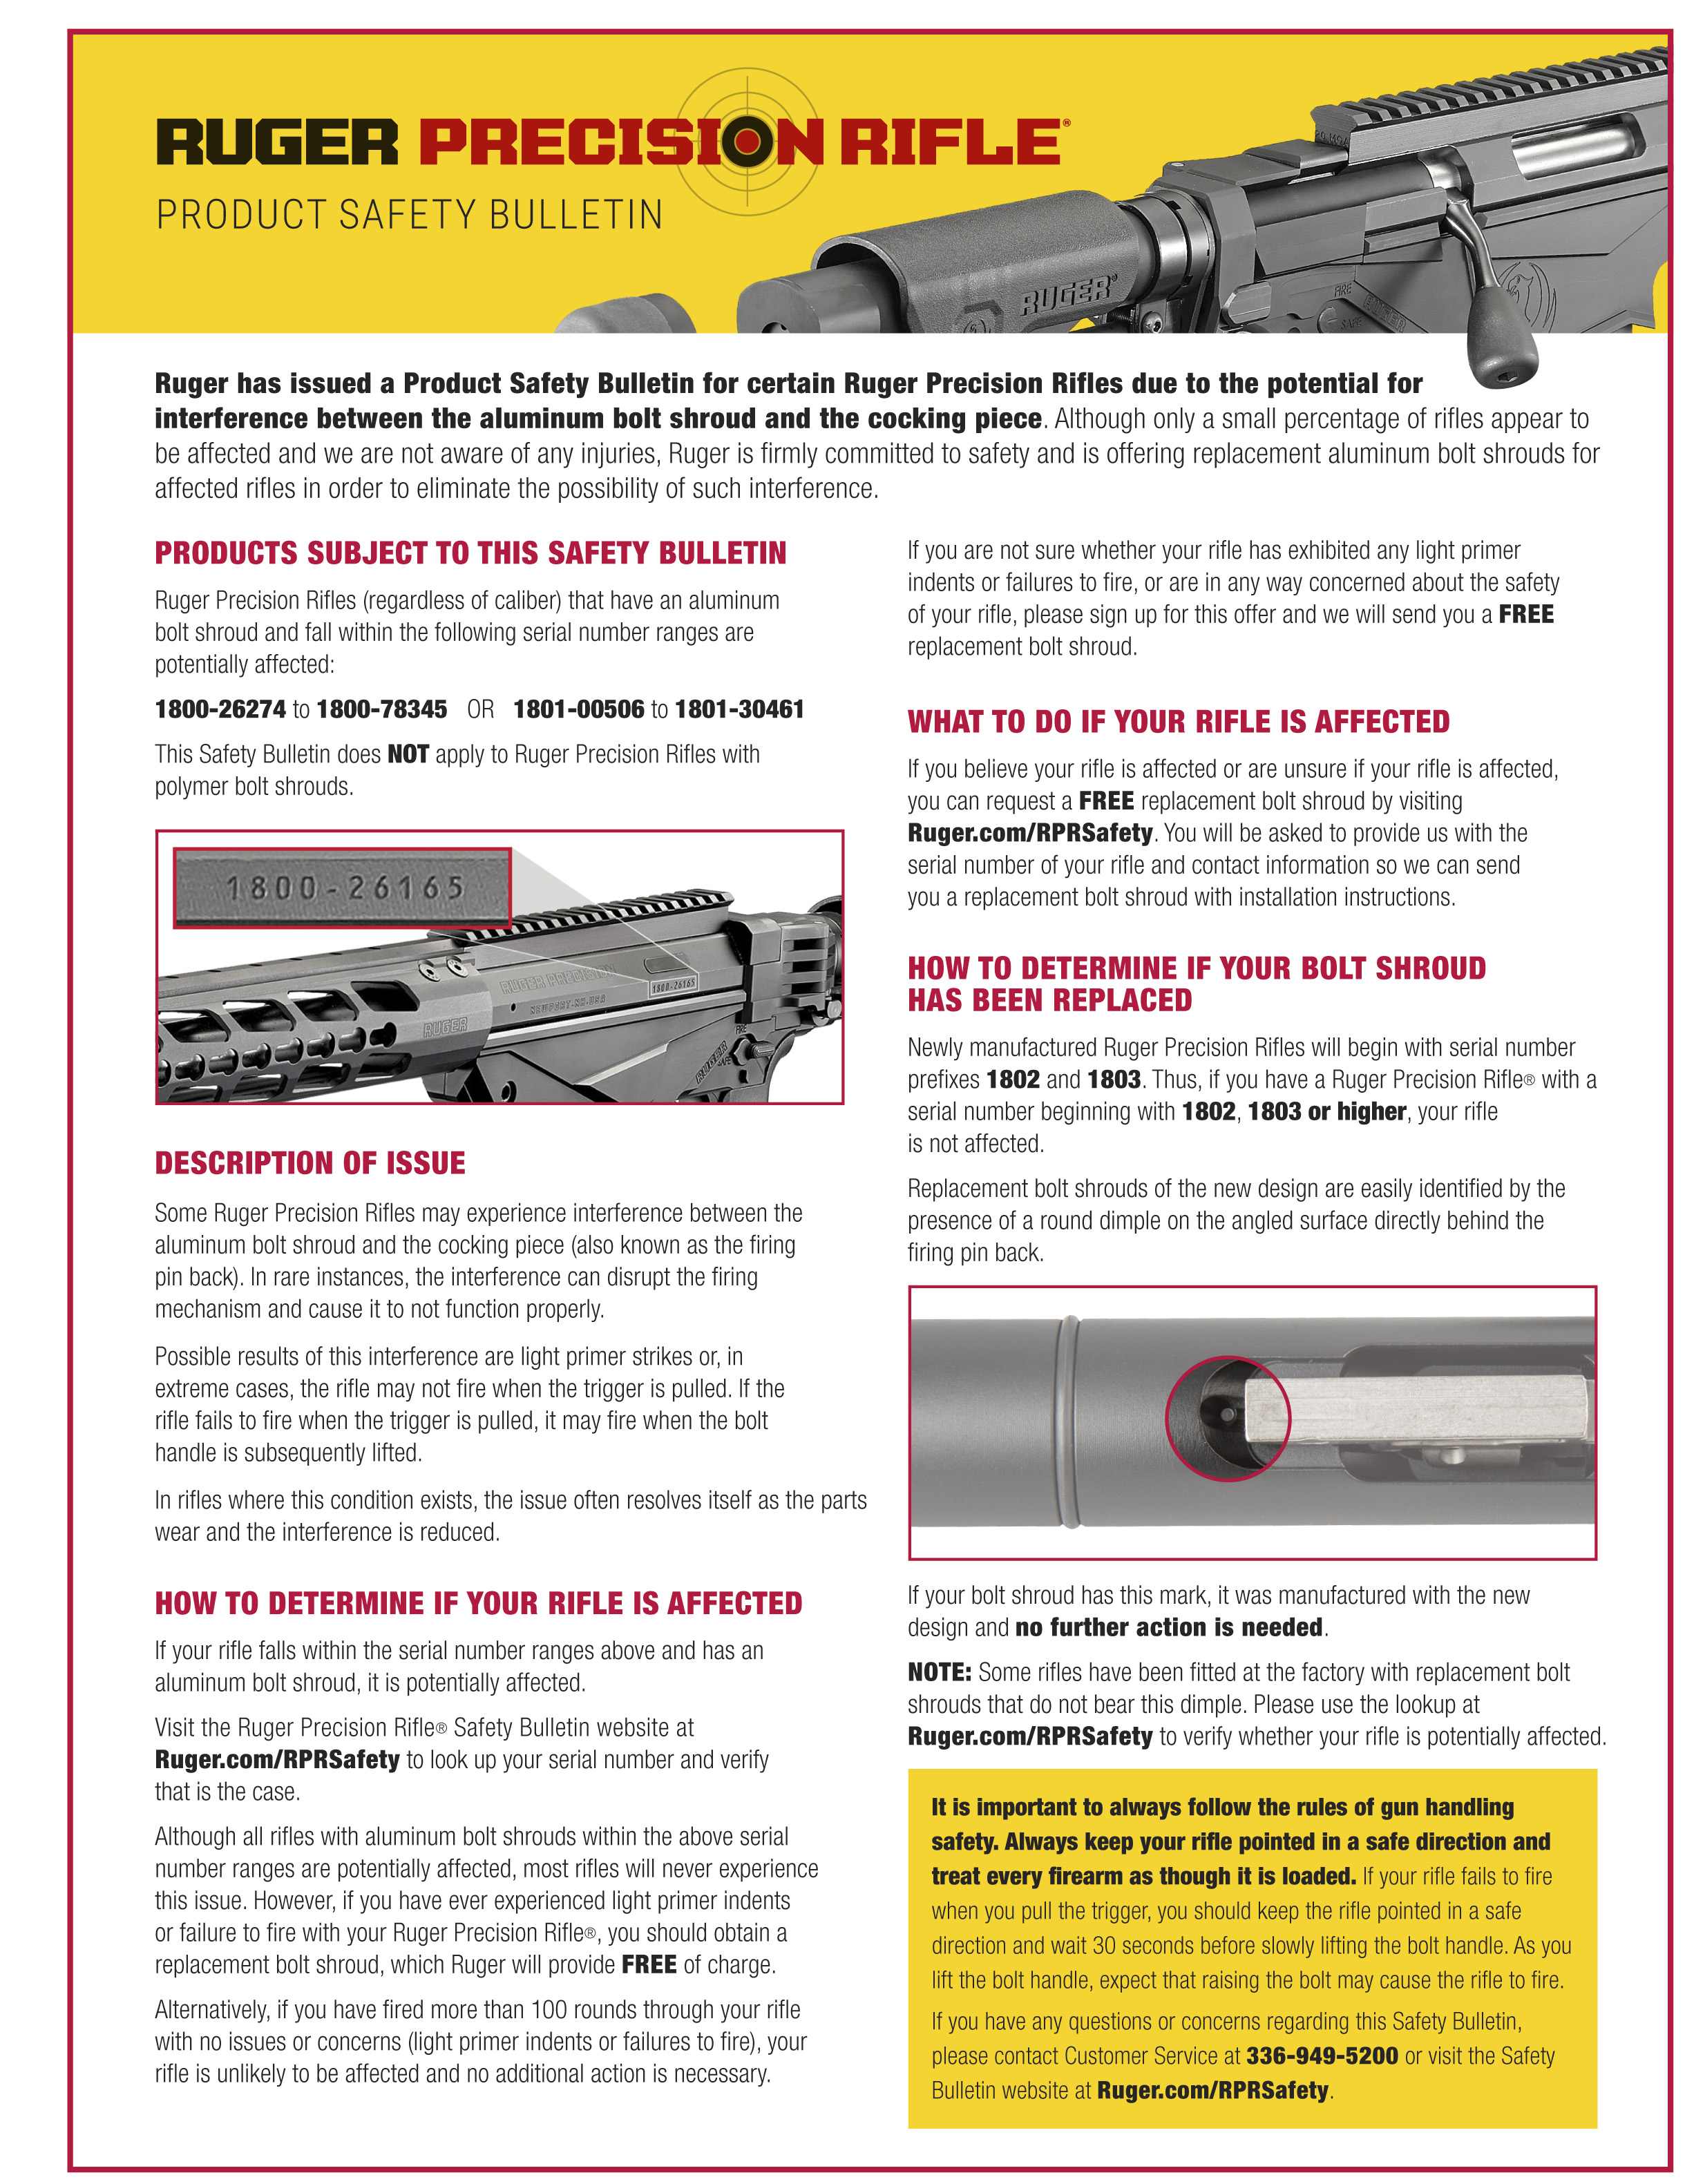 Ruger Safety Bulletin